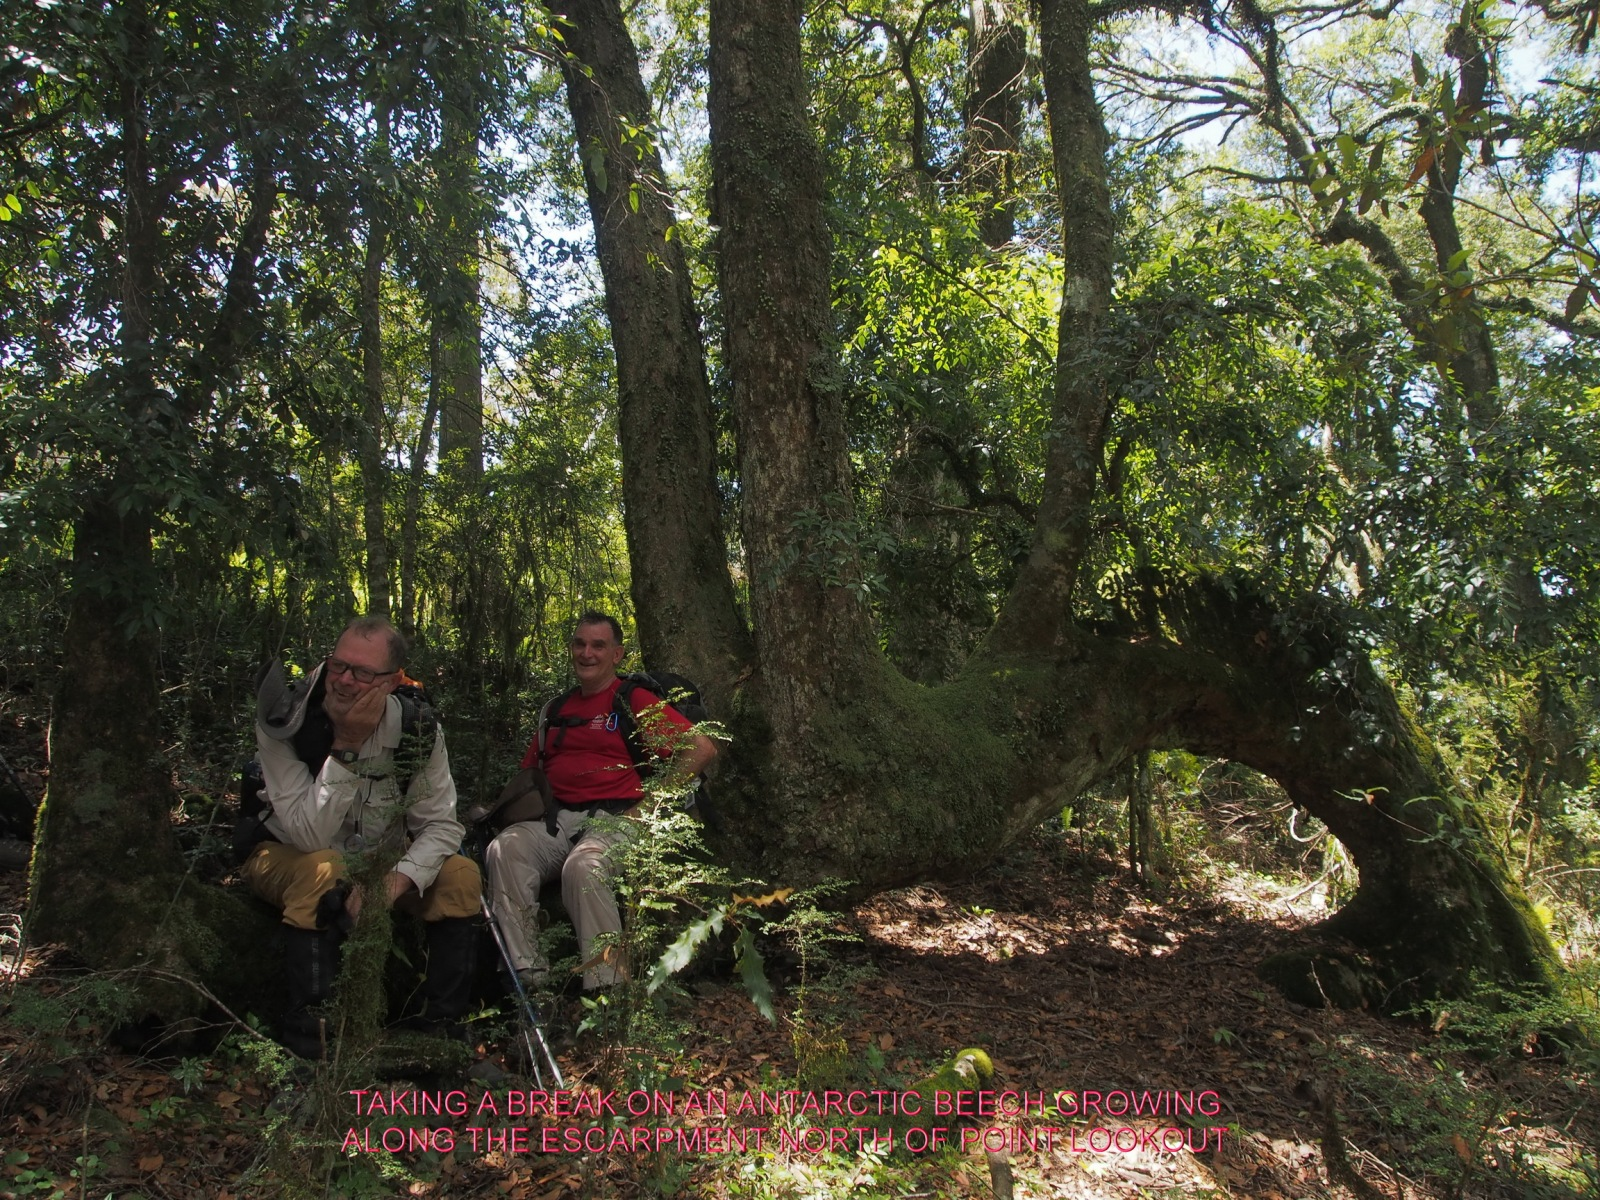 TAKING A BREAK ON AN ANTARCTIC BEECH GROWING ALONG THE ESCARPMENT NORTH OF POINT LOOKOUT